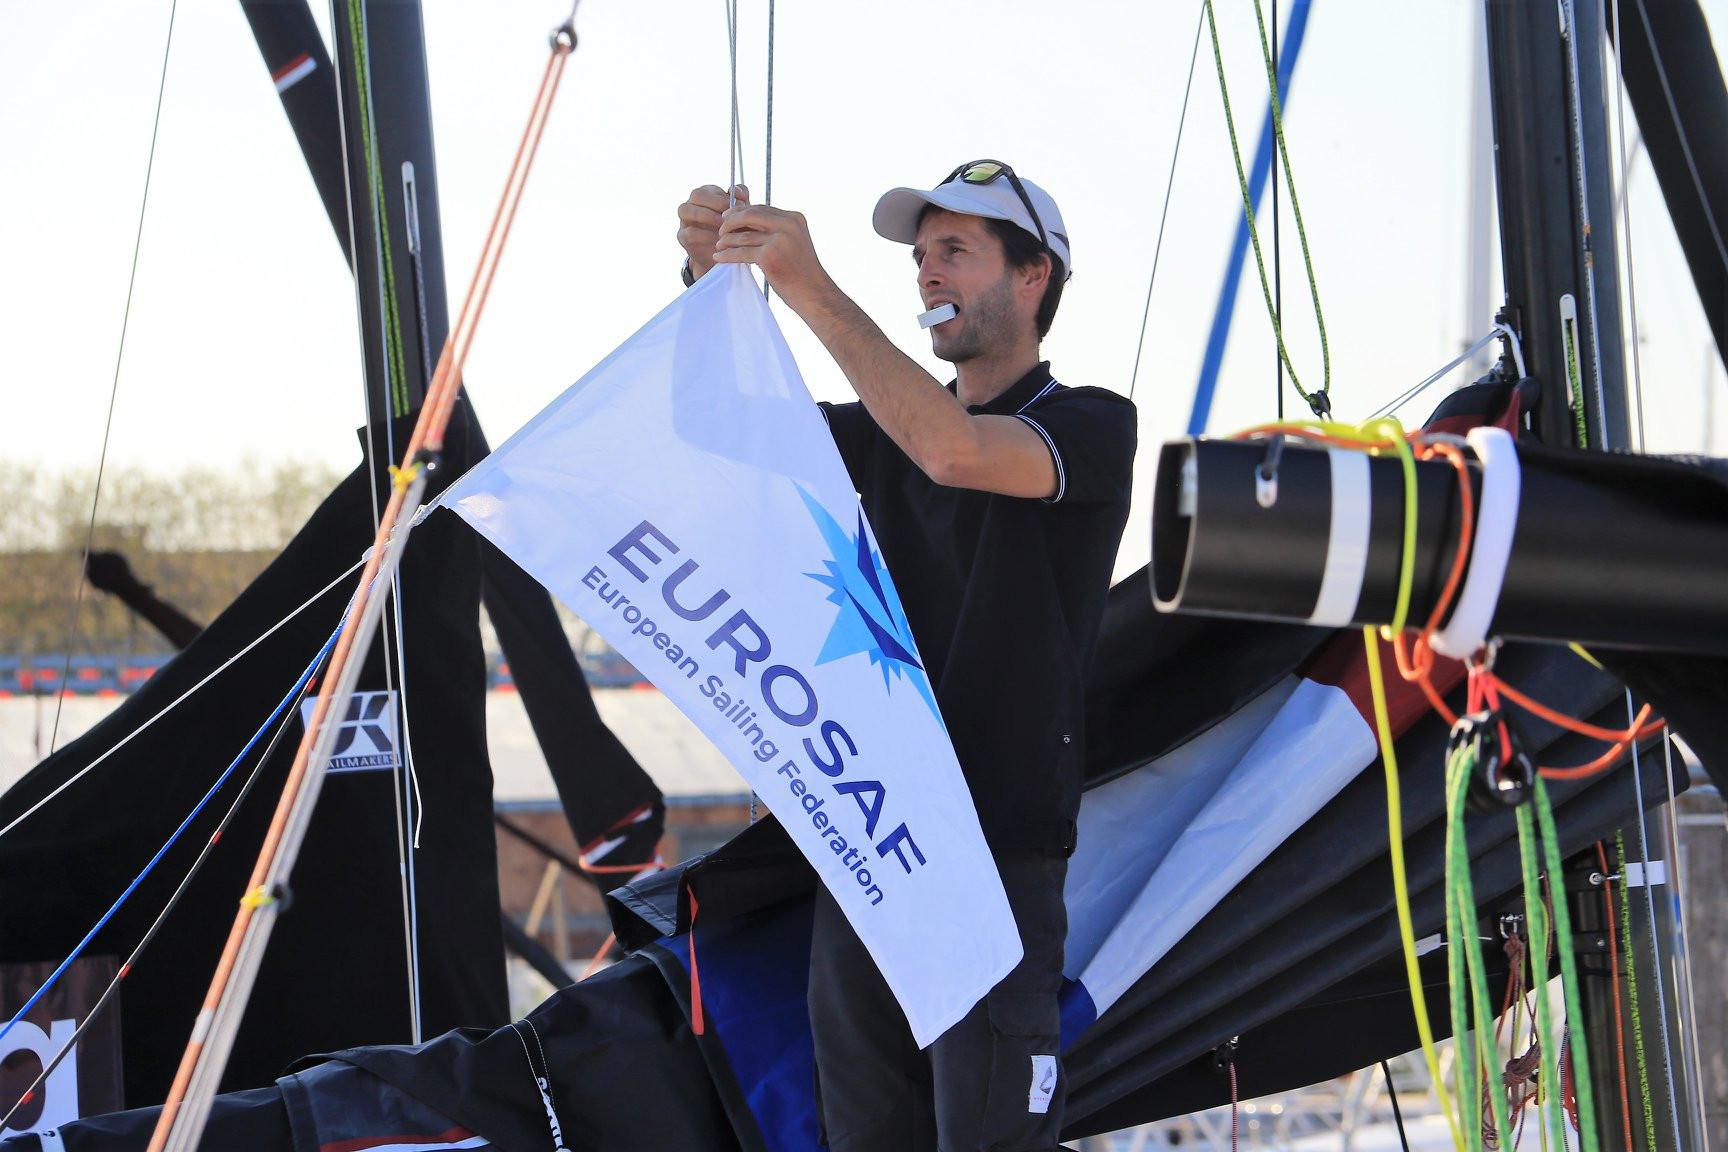 Weather forces postponement of EUROSAF Mixed Offshore European Championship opener